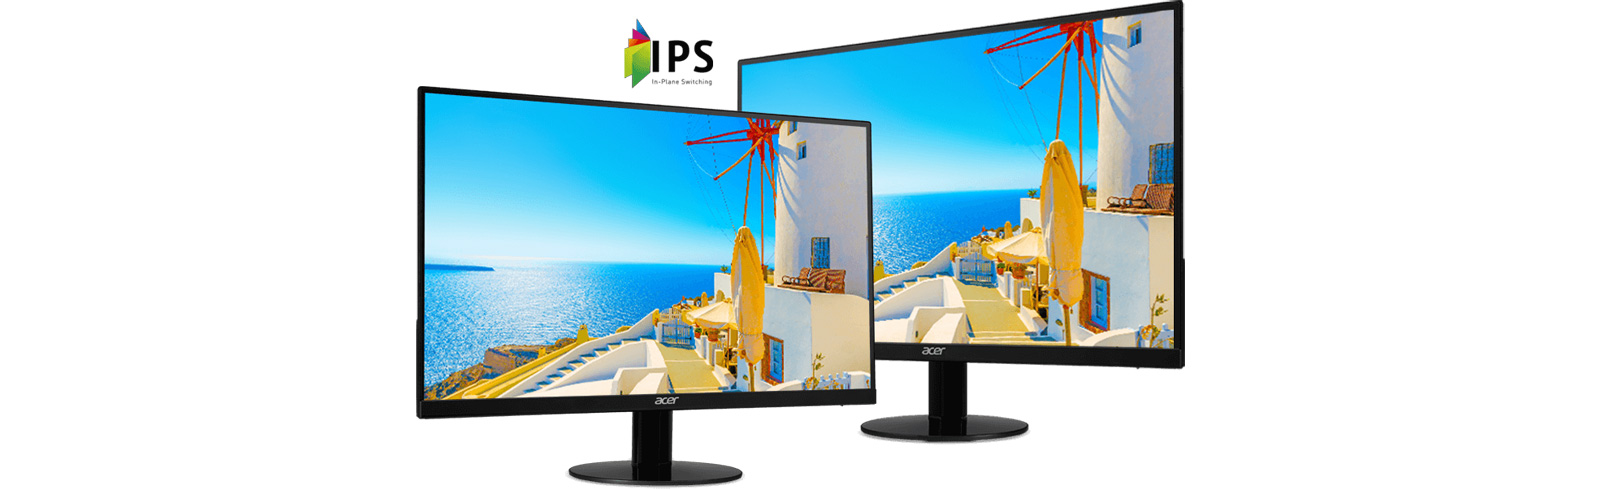 Acer SB240Y Bbix, SB240Y Bbmix, and SB220Qbi mark the launch of the Acer SB0 series of monitors